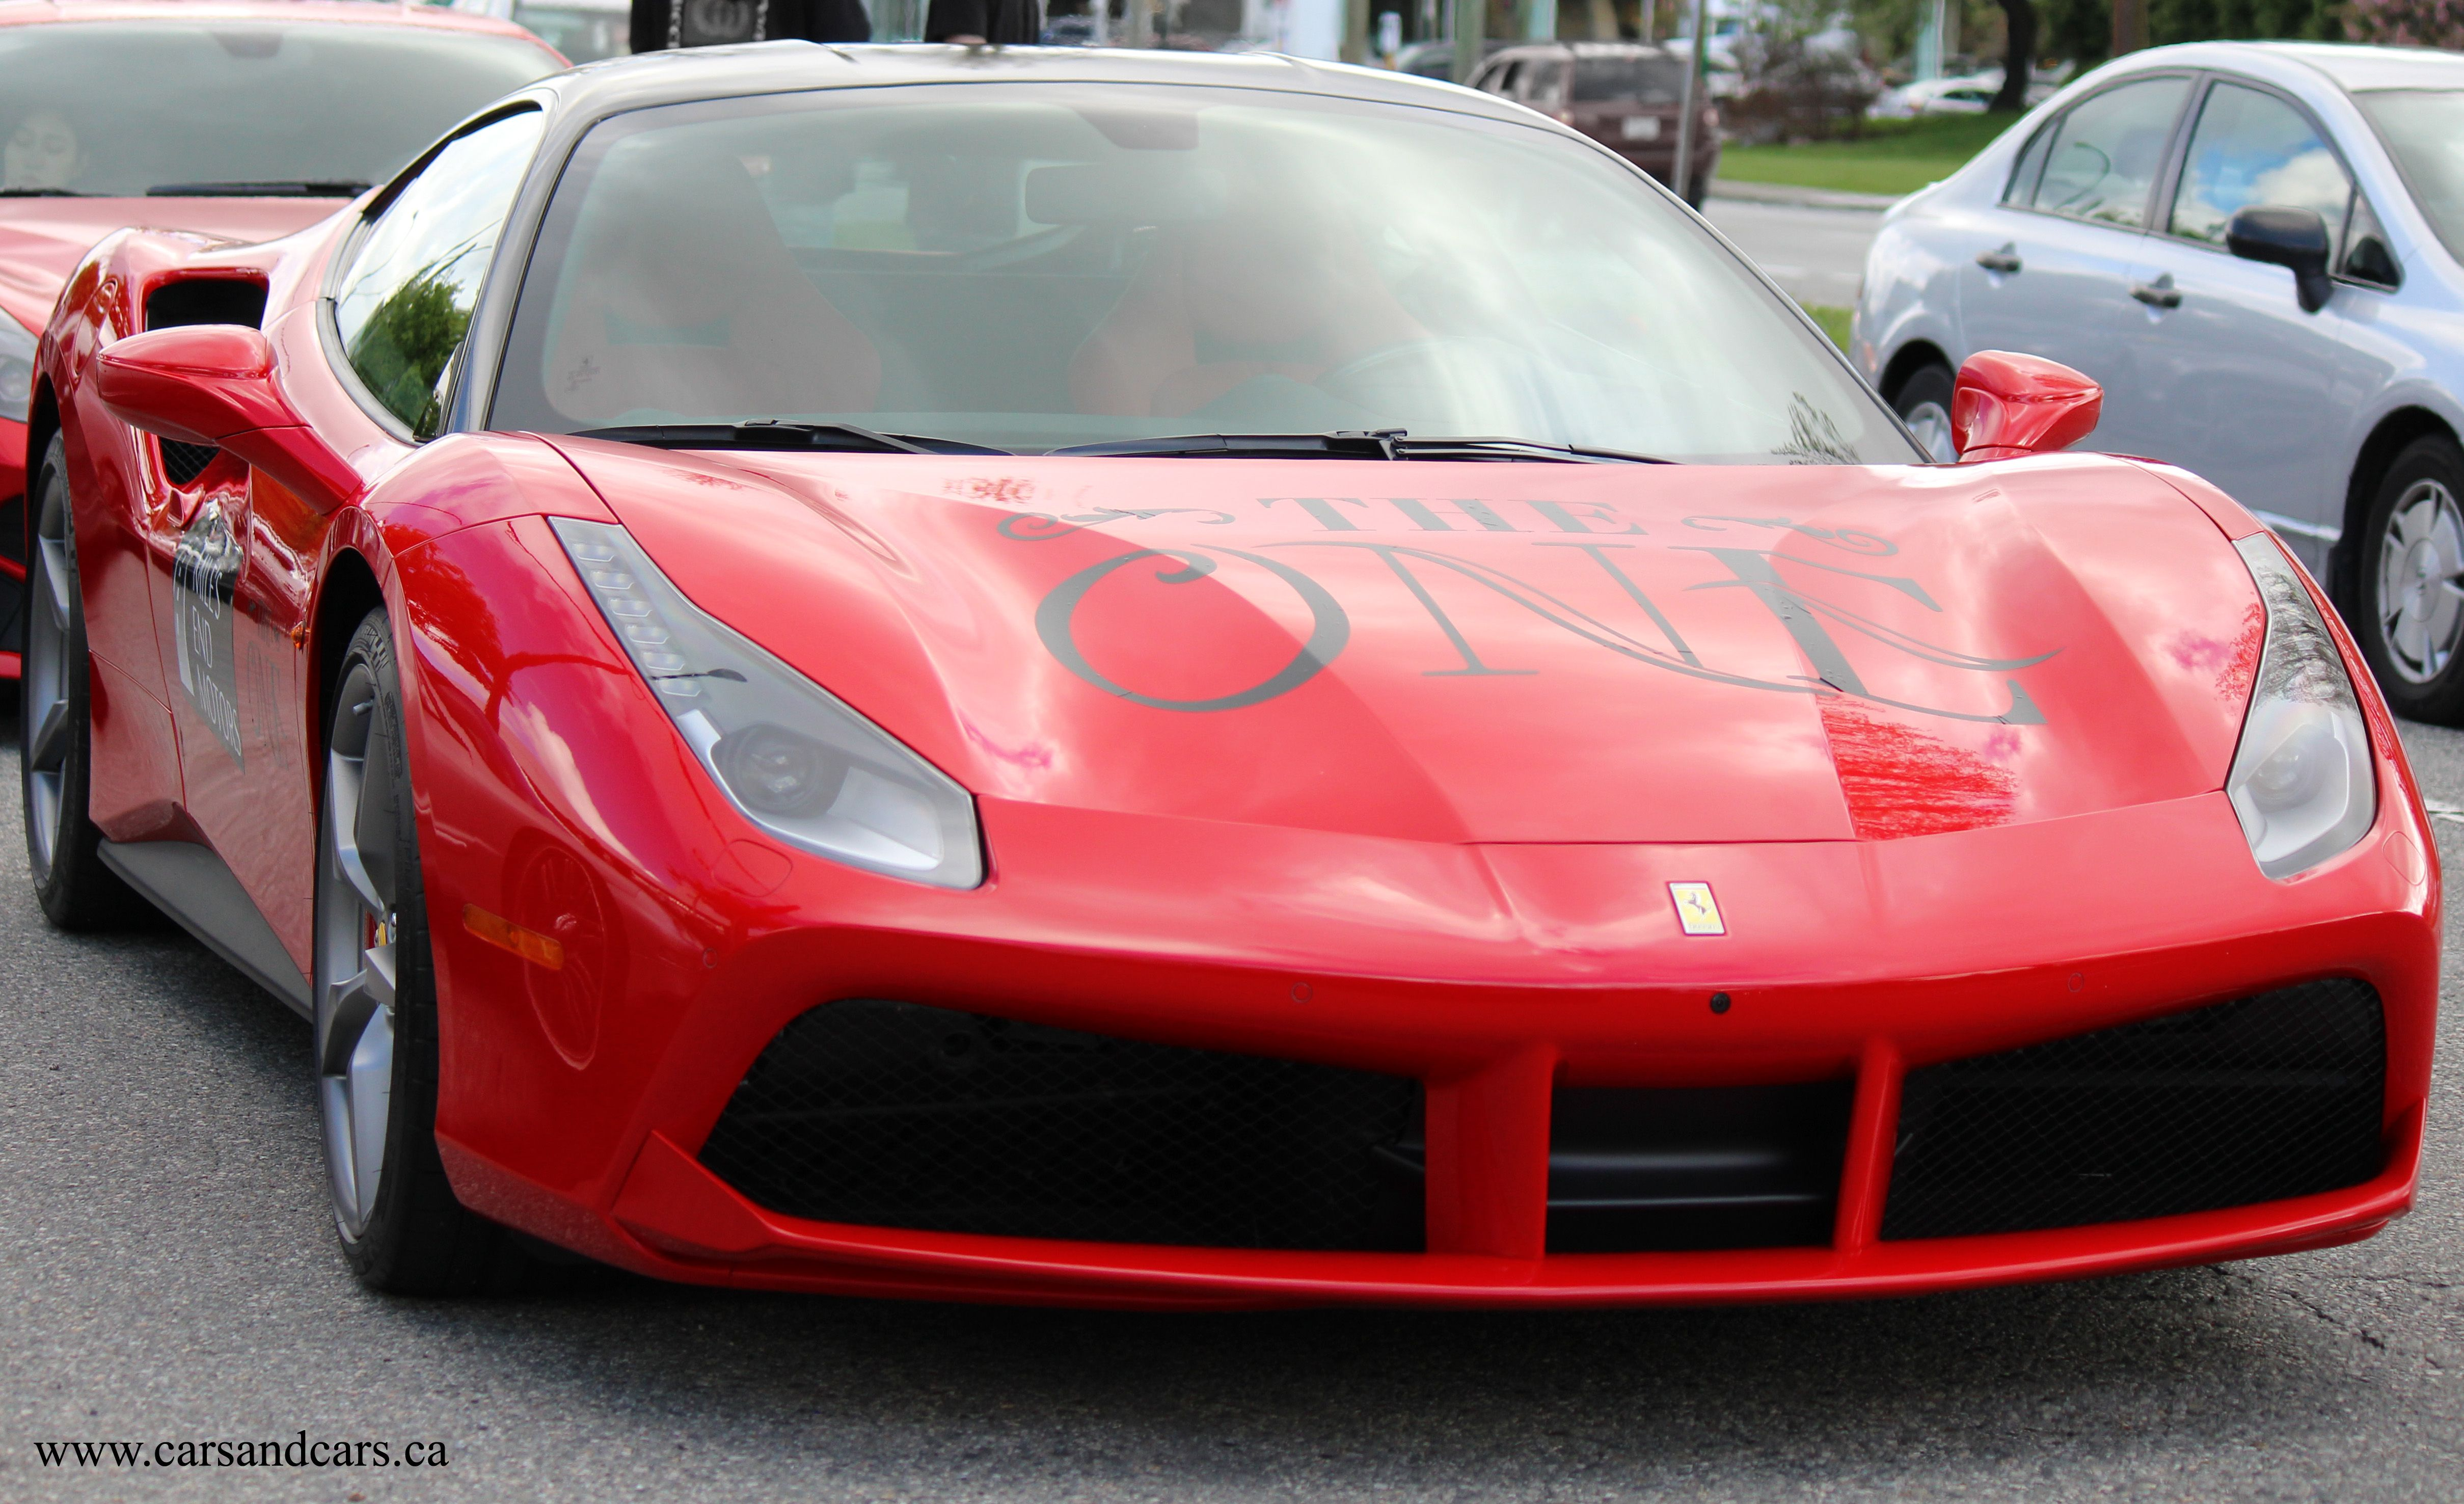 fibre carbon speciale extensive vehicle sale etc img used options large for ferrari details